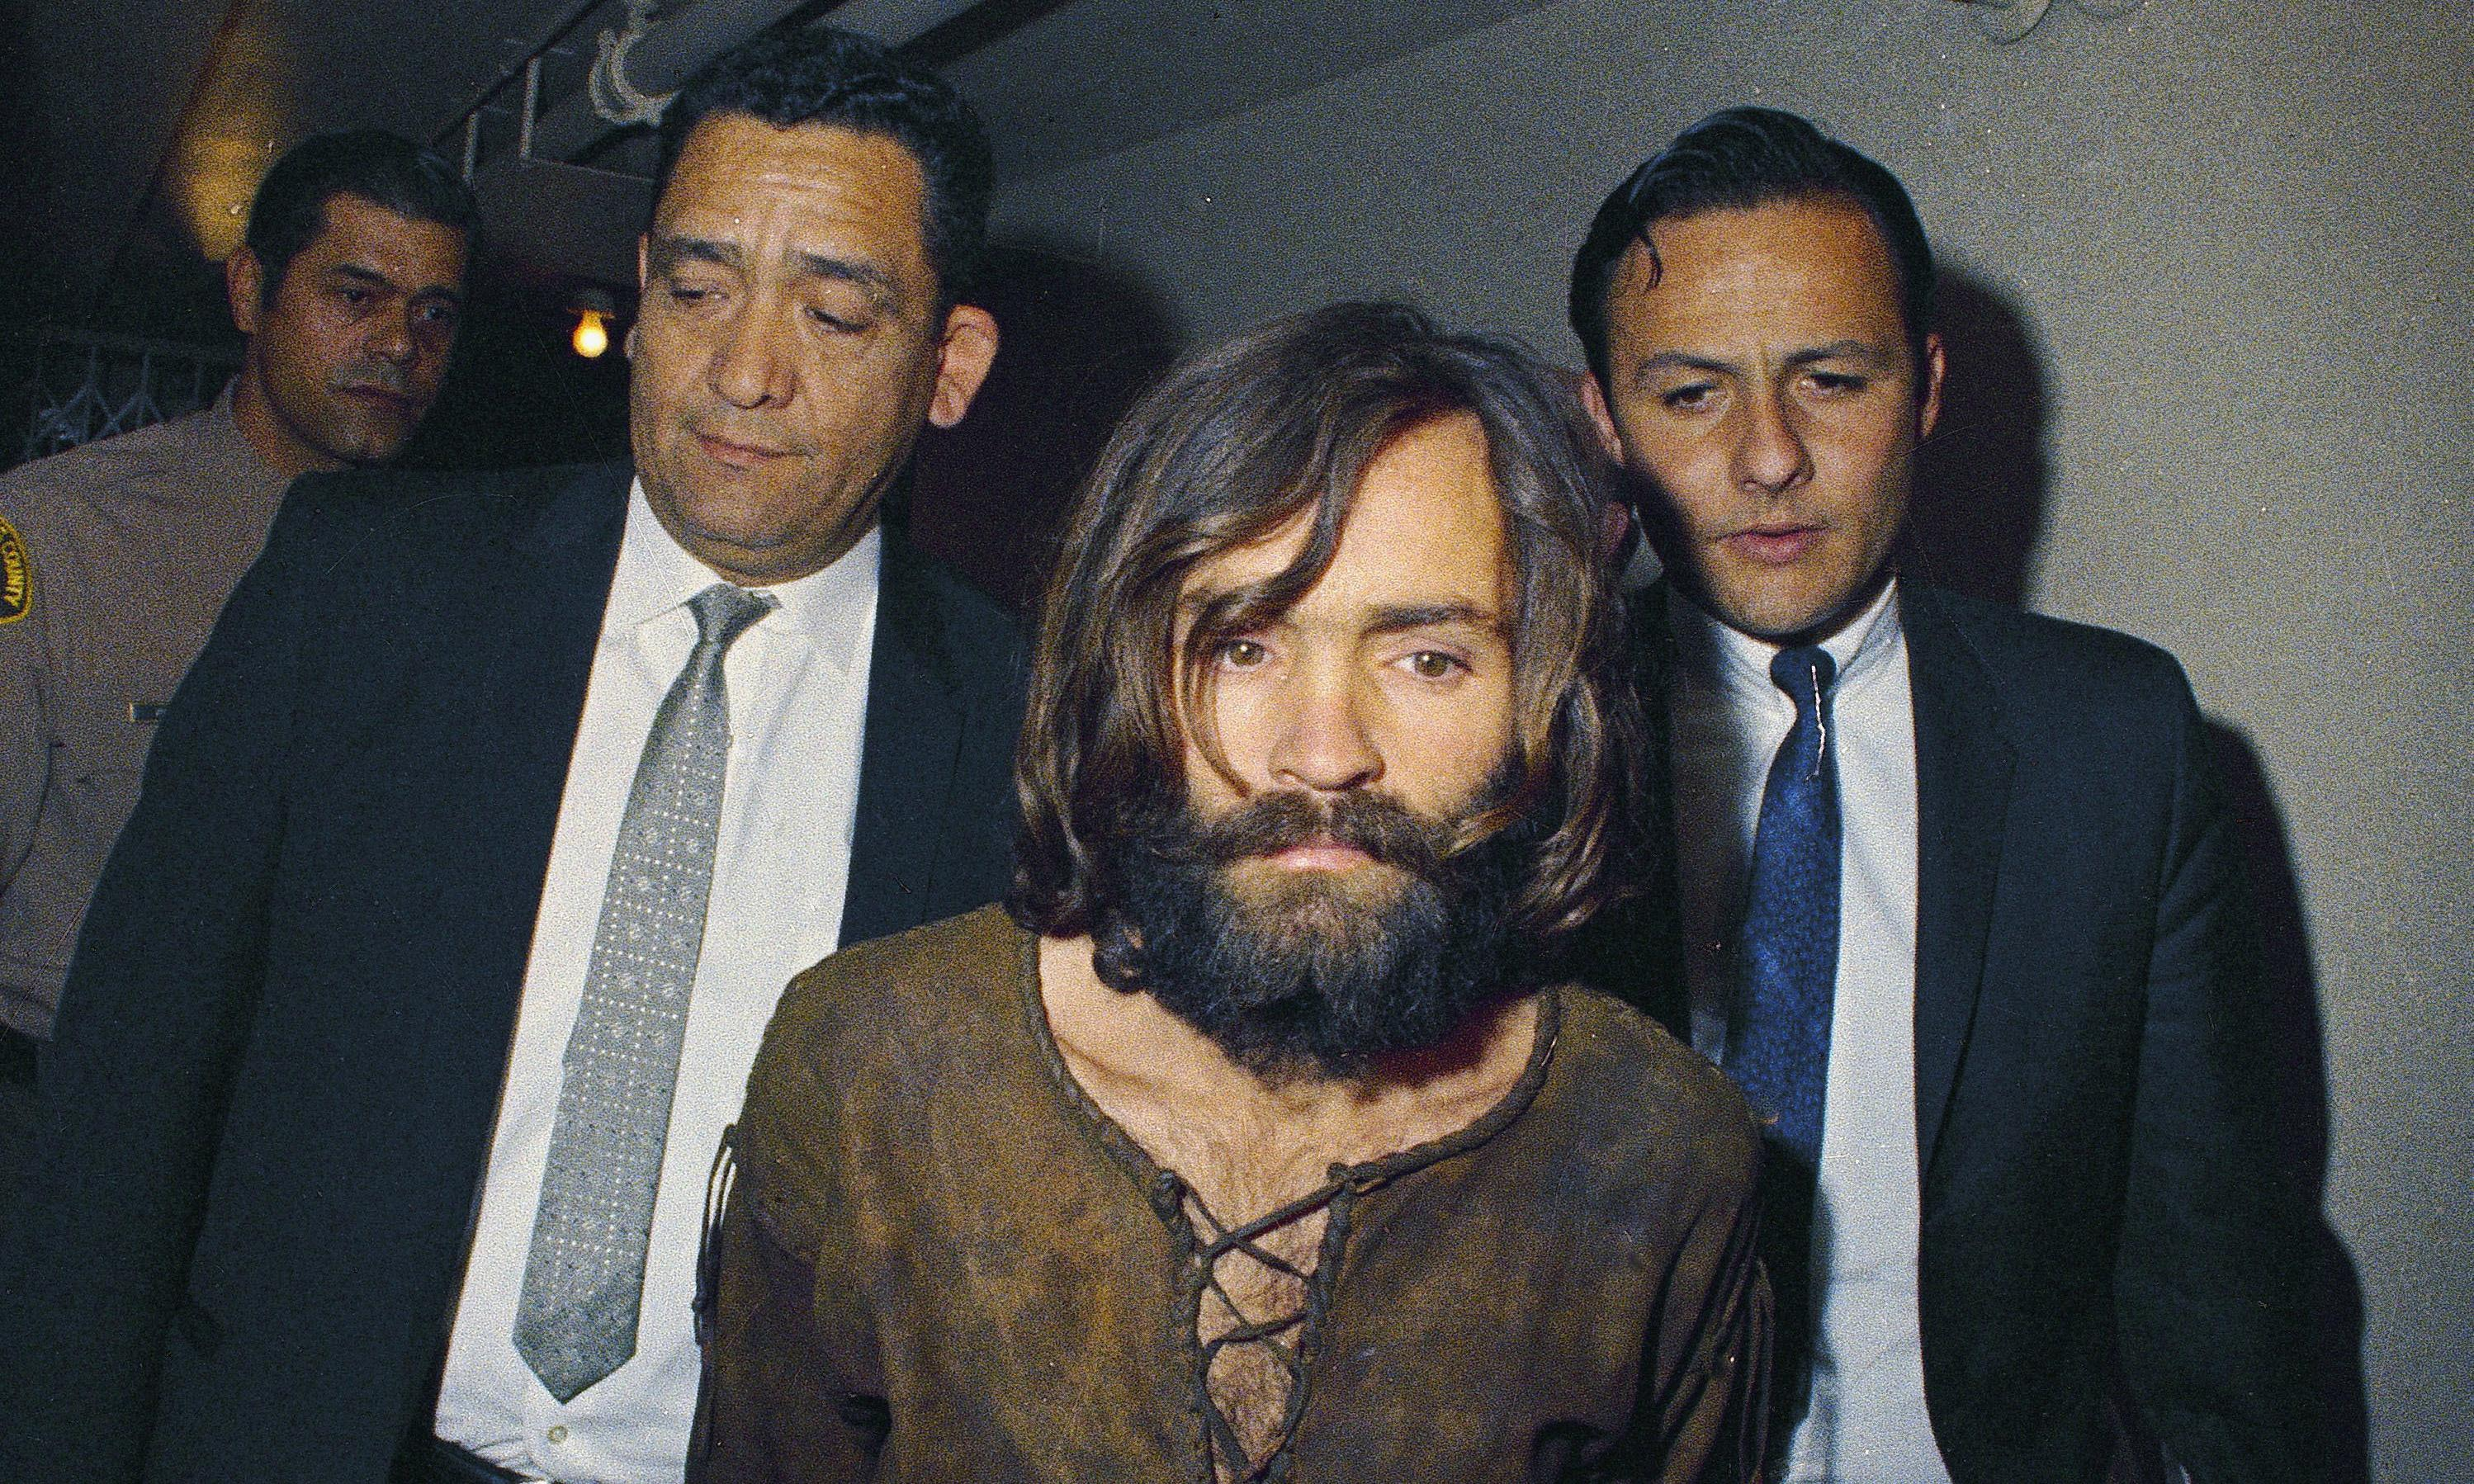 Chaos: Charles Manson, the CIA and the Secret History of the Sixties by Tom O'Neill with Dan Piepenbring – review